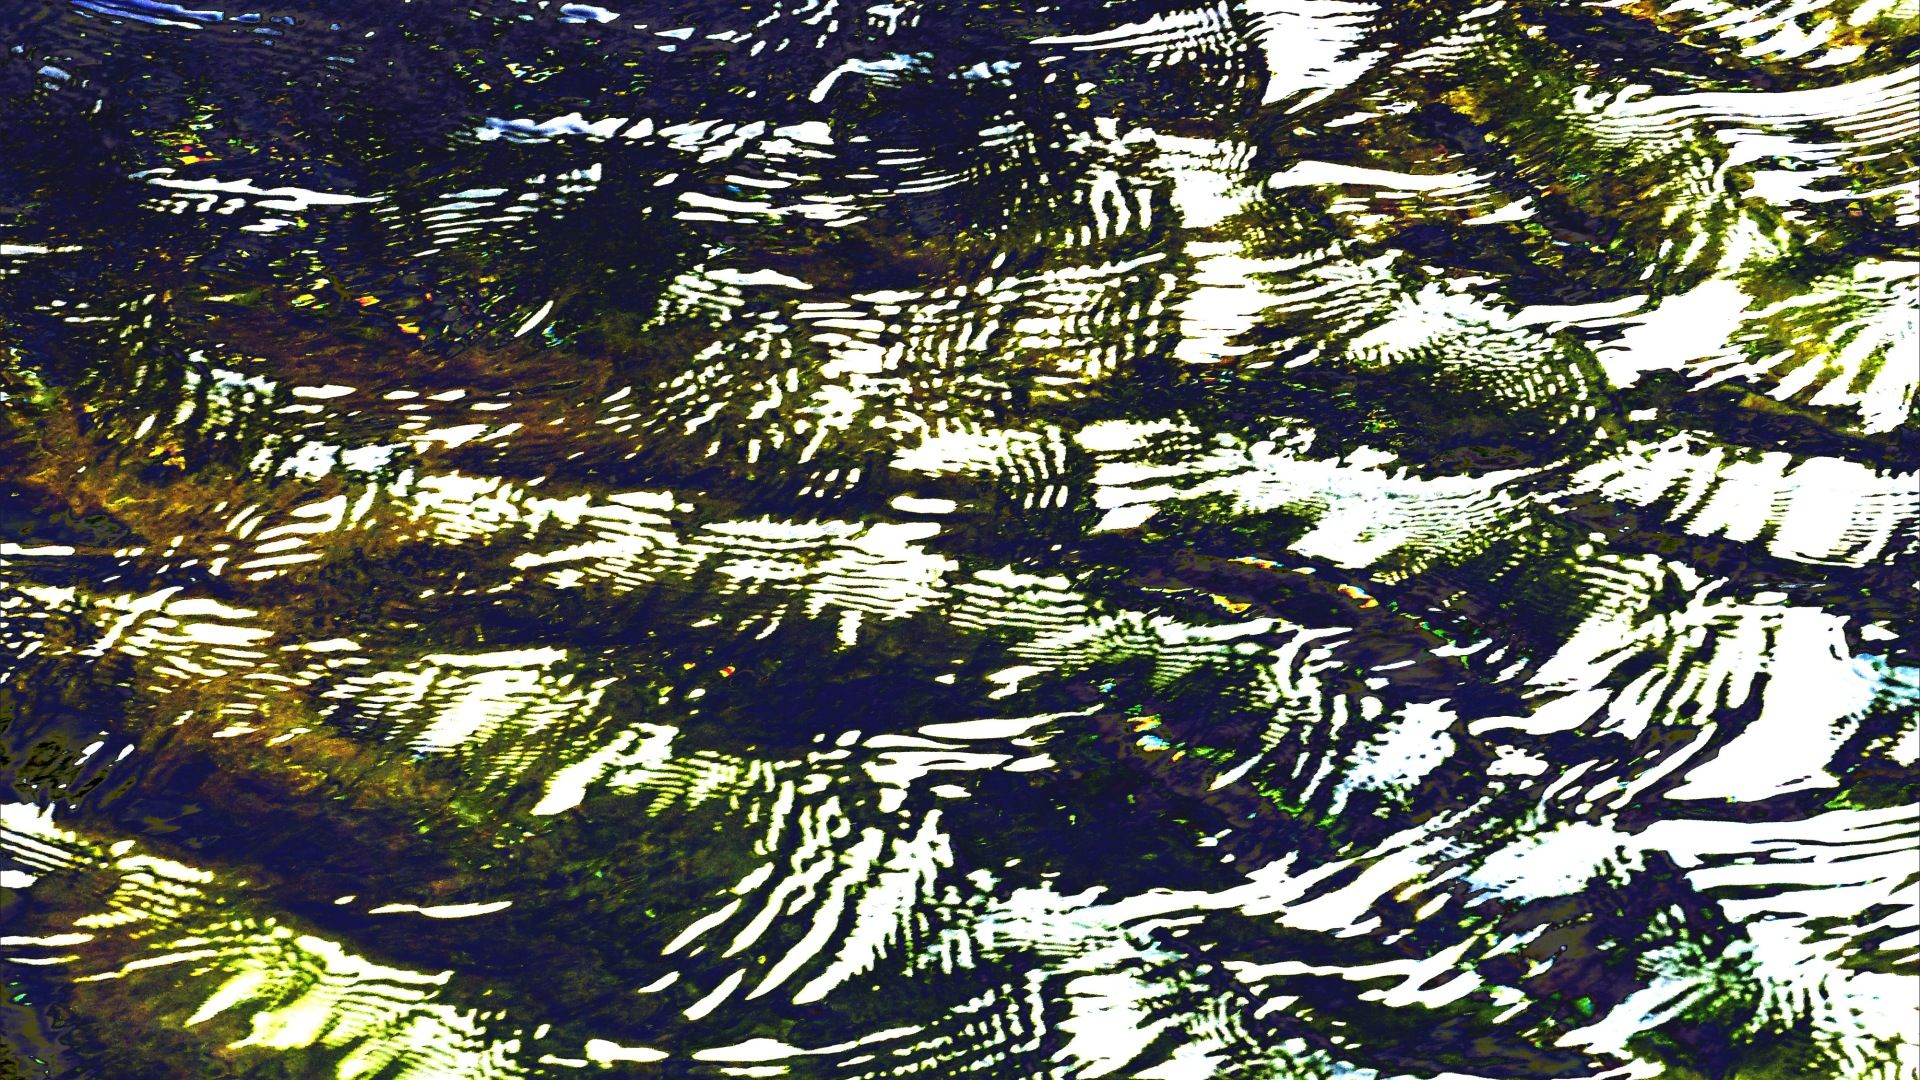 Variation in natural water ripple and reflection pattern